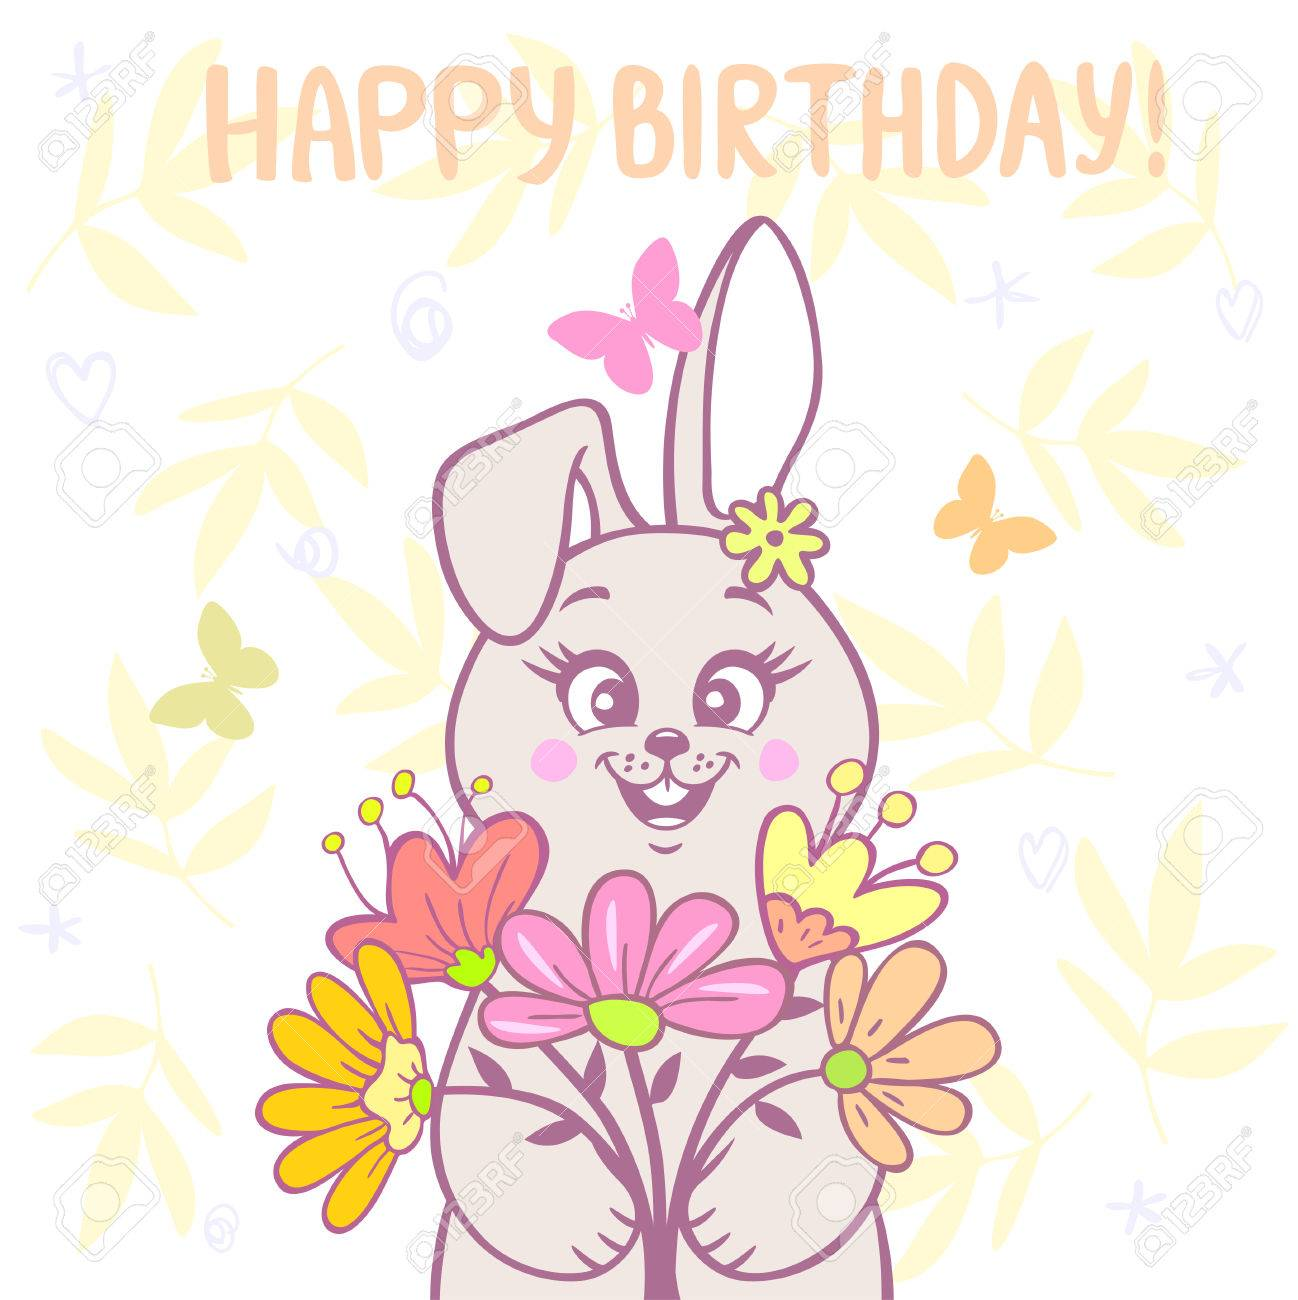 Beautiful Cartoon Cute And Funny Bunny With A Bouquet Of Flowers Happy Birthday Card